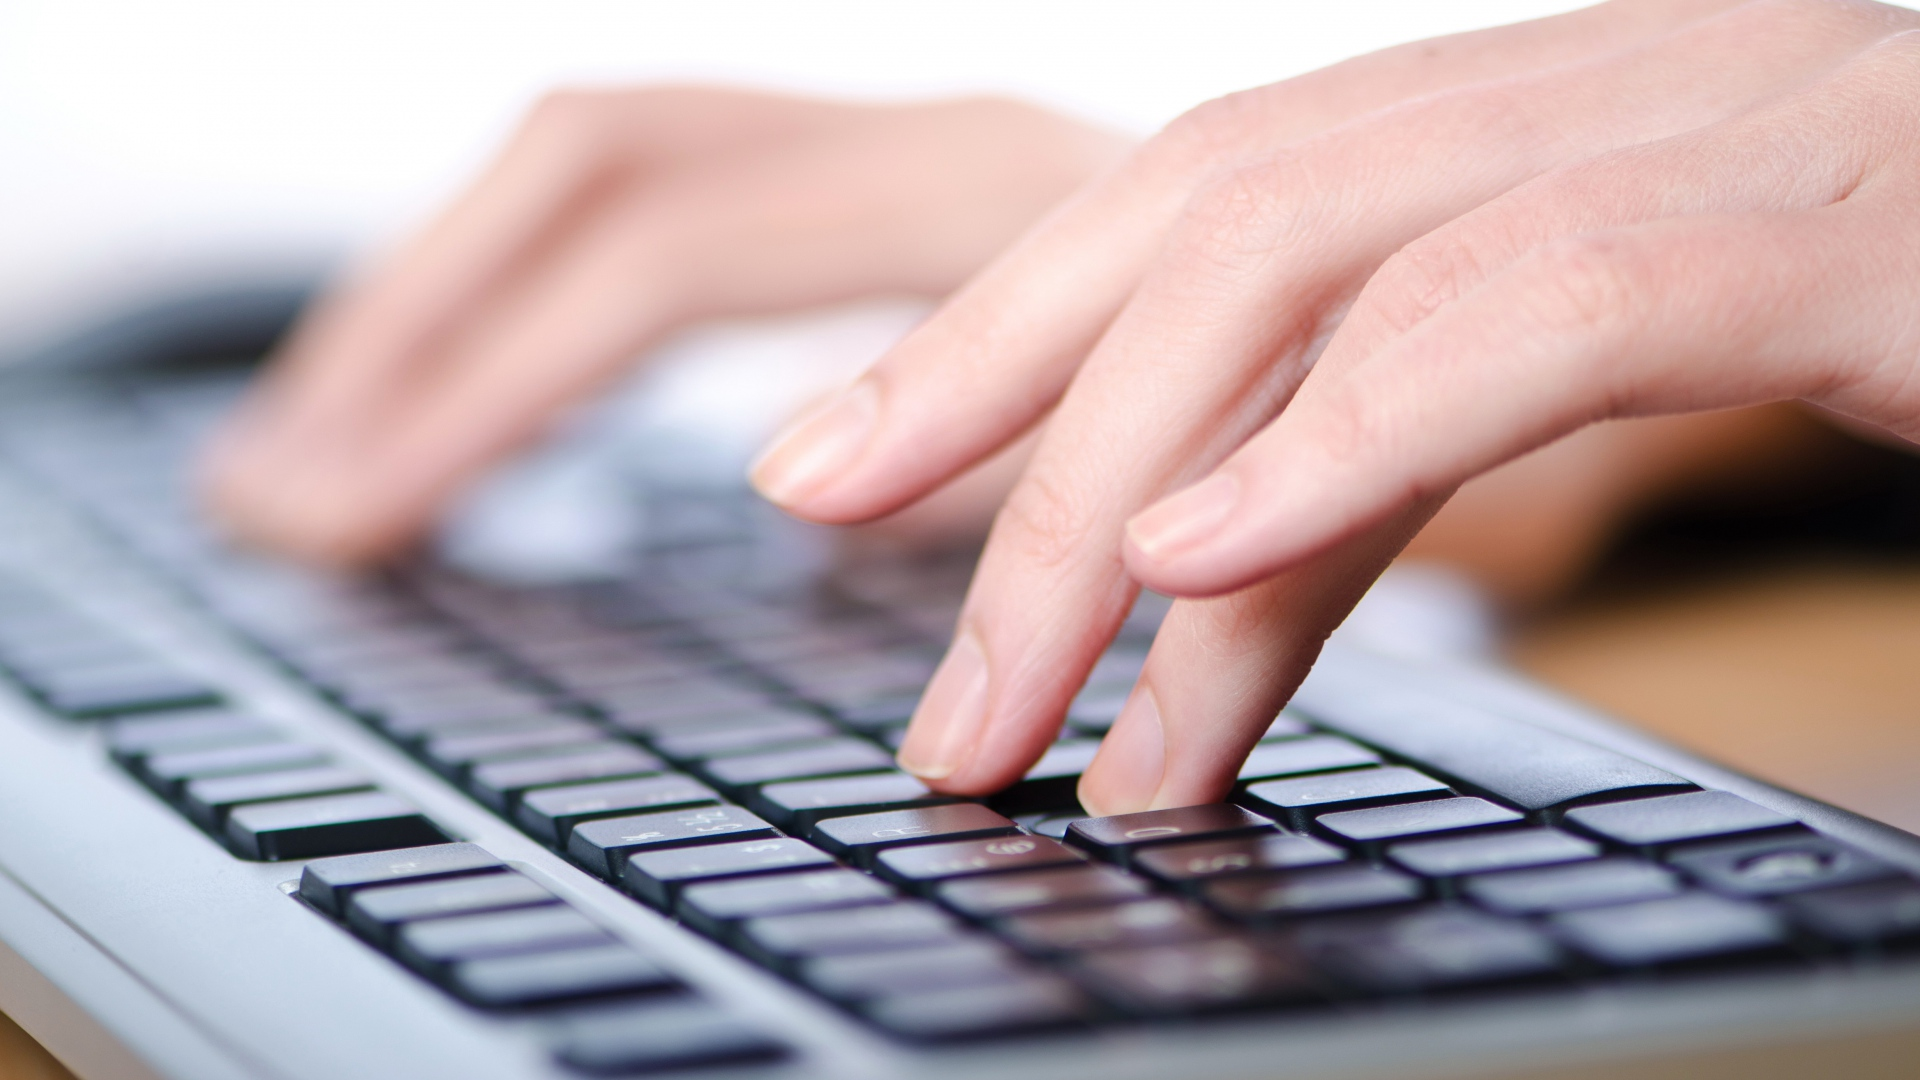 Email typing and Sending to clients